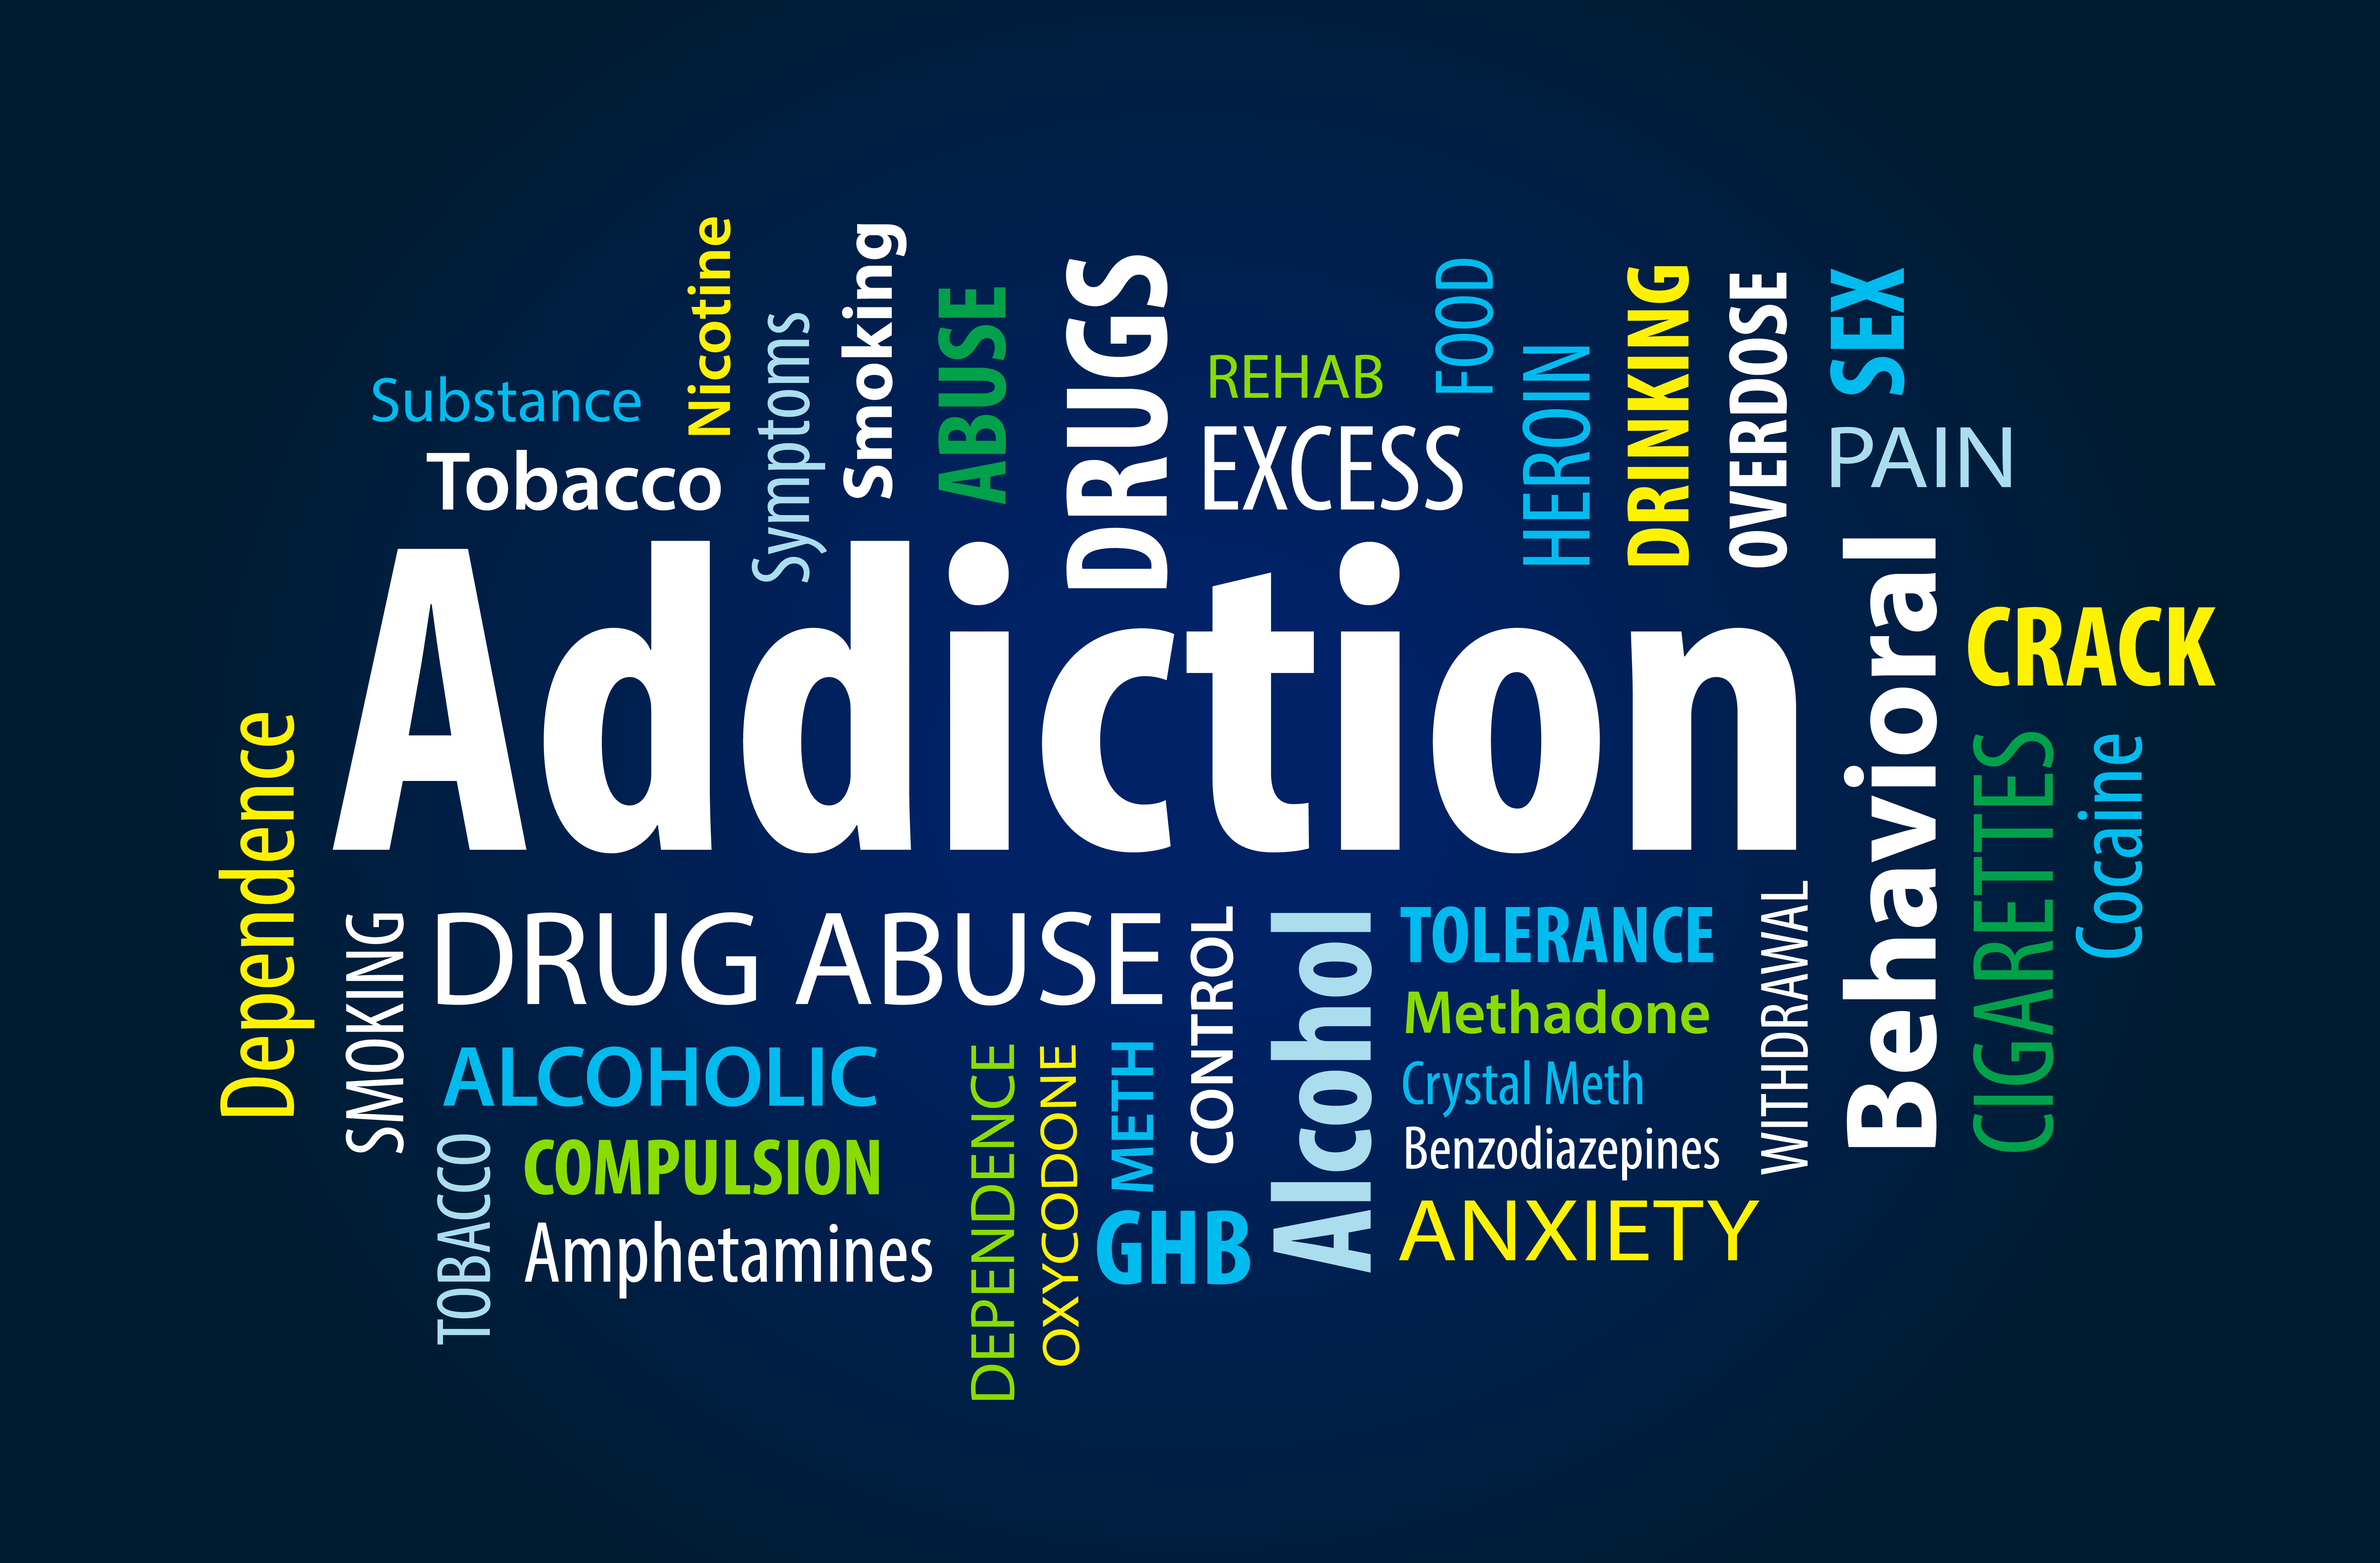 Addiction Relapse: Triggers & Cues